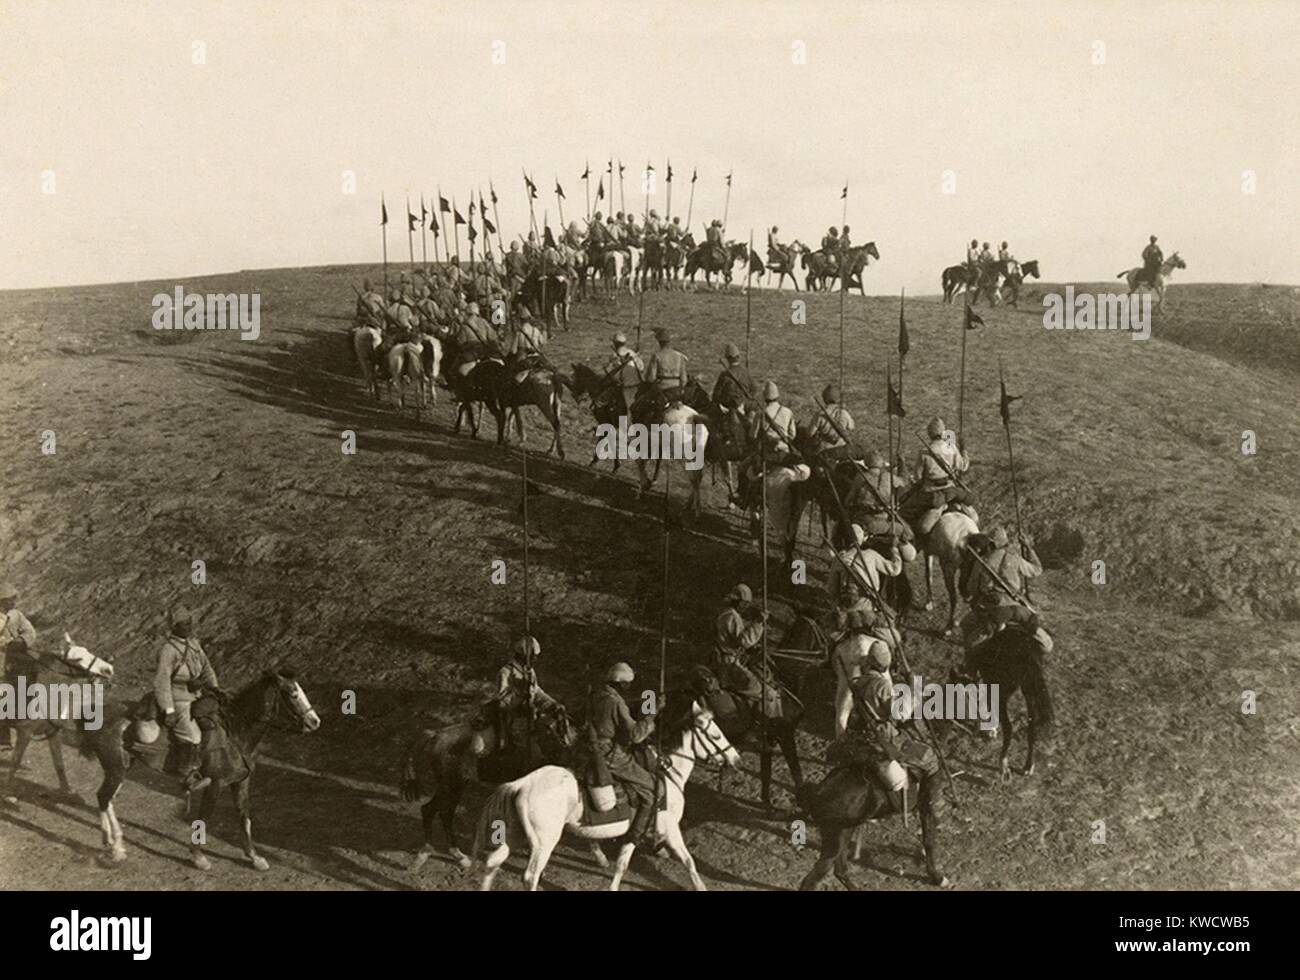 World War 1 in the Middle East. Turkish lancers west of Beersheba. The Battle of Beersheba (also called the Third - Stock Image